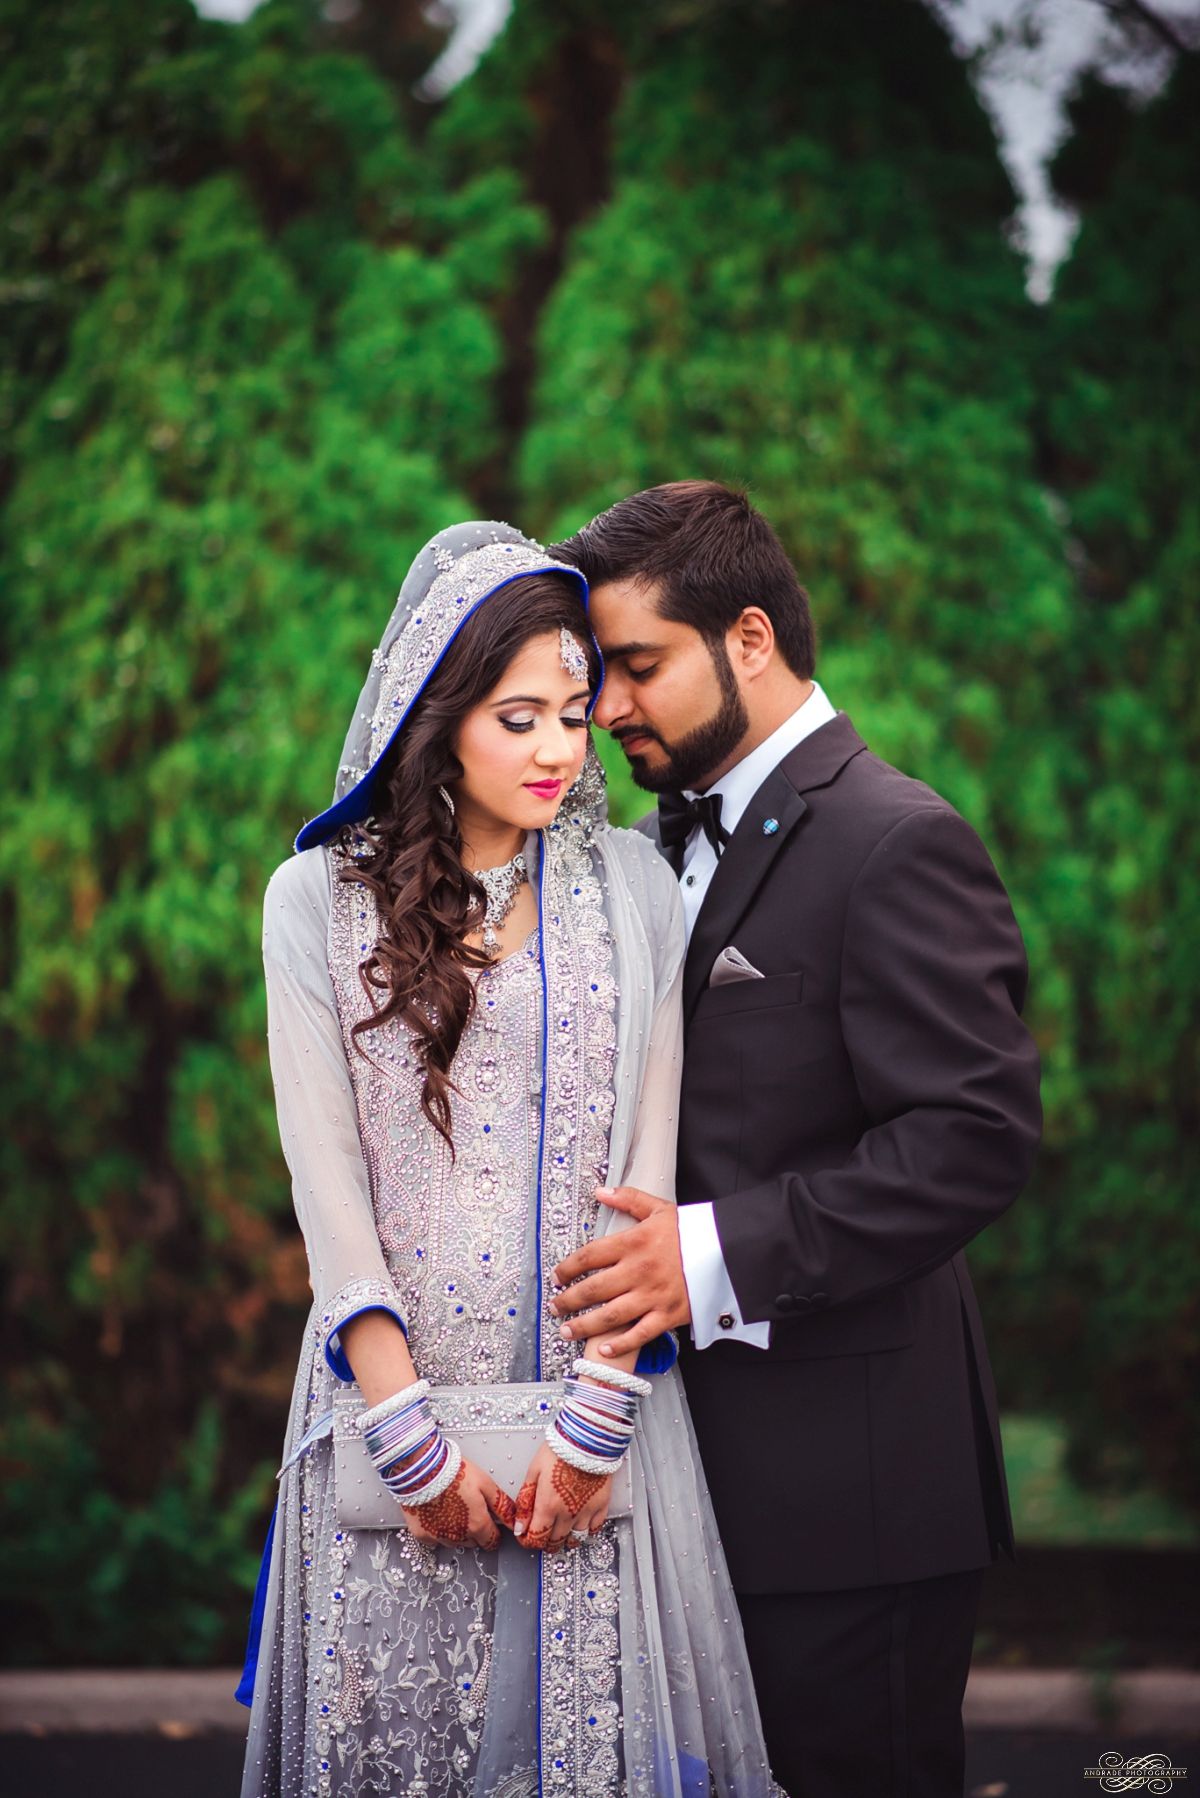 Umer + Abeer The Empress Banquet Wedding Photography Addison Illinois_0045.jpg